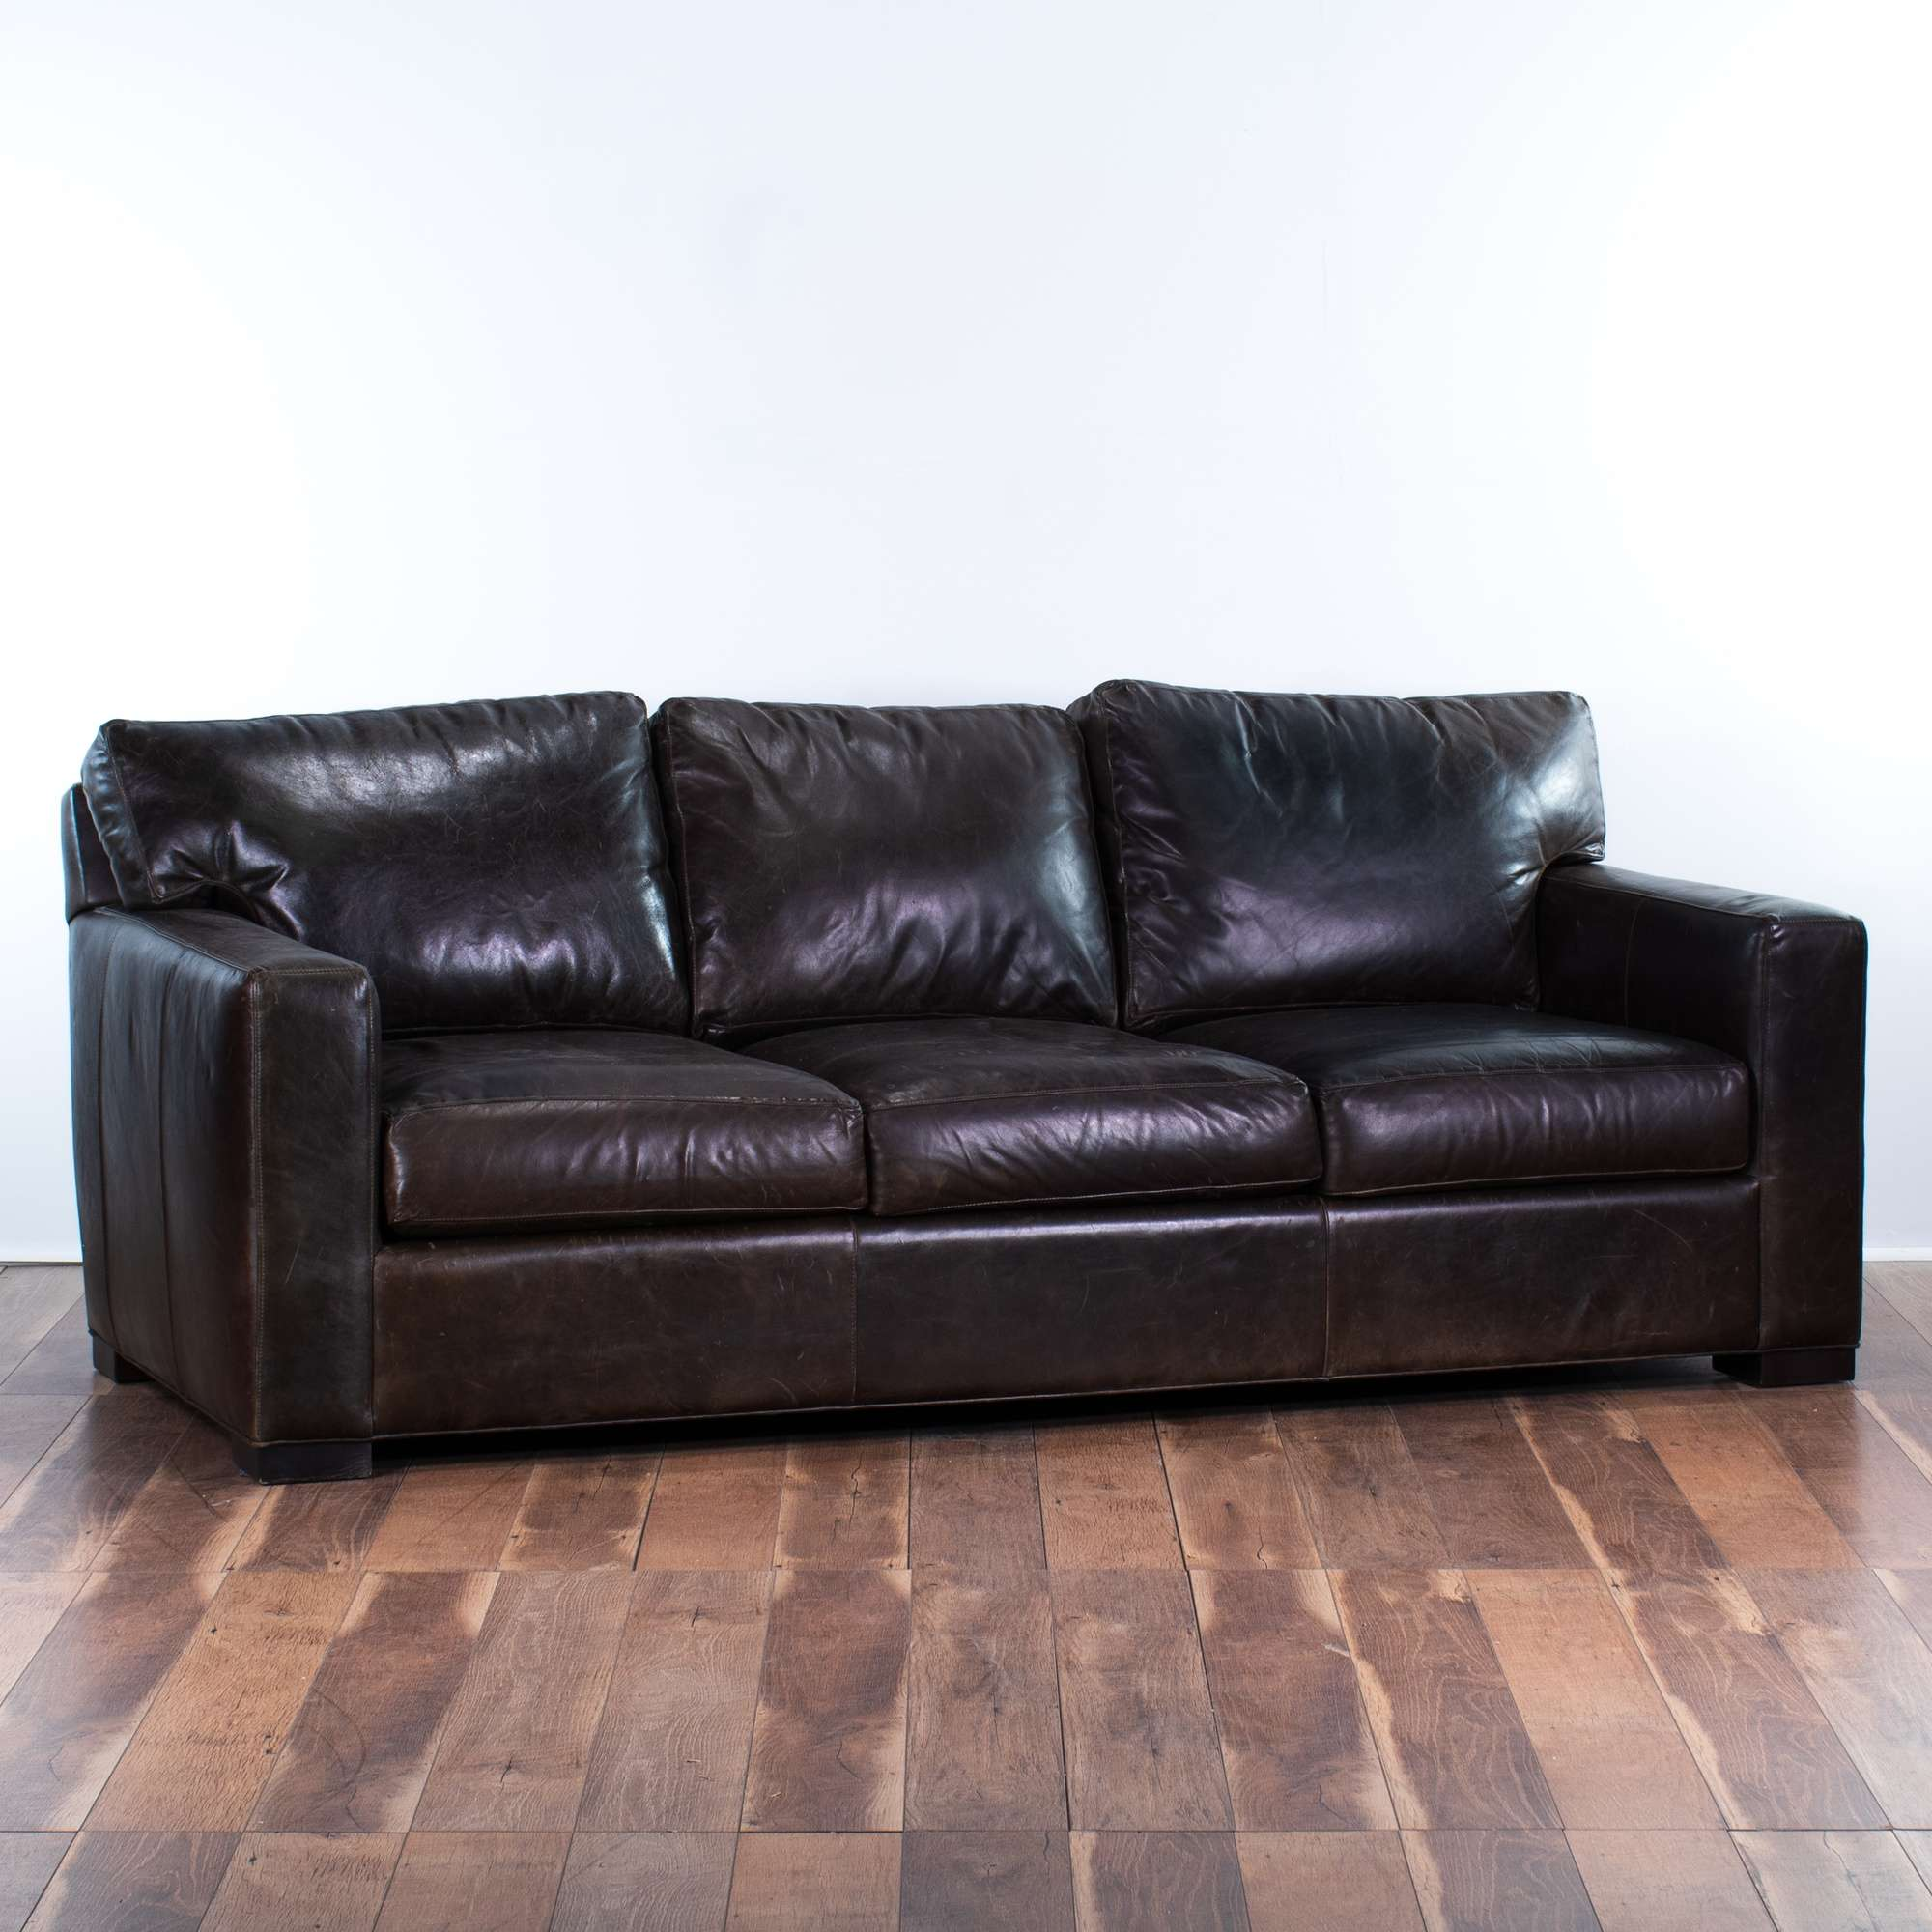 Remarkable Crate Barrel Dark Brown Leather Sofa Loveseat Vintage Gmtry Best Dining Table And Chair Ideas Images Gmtryco